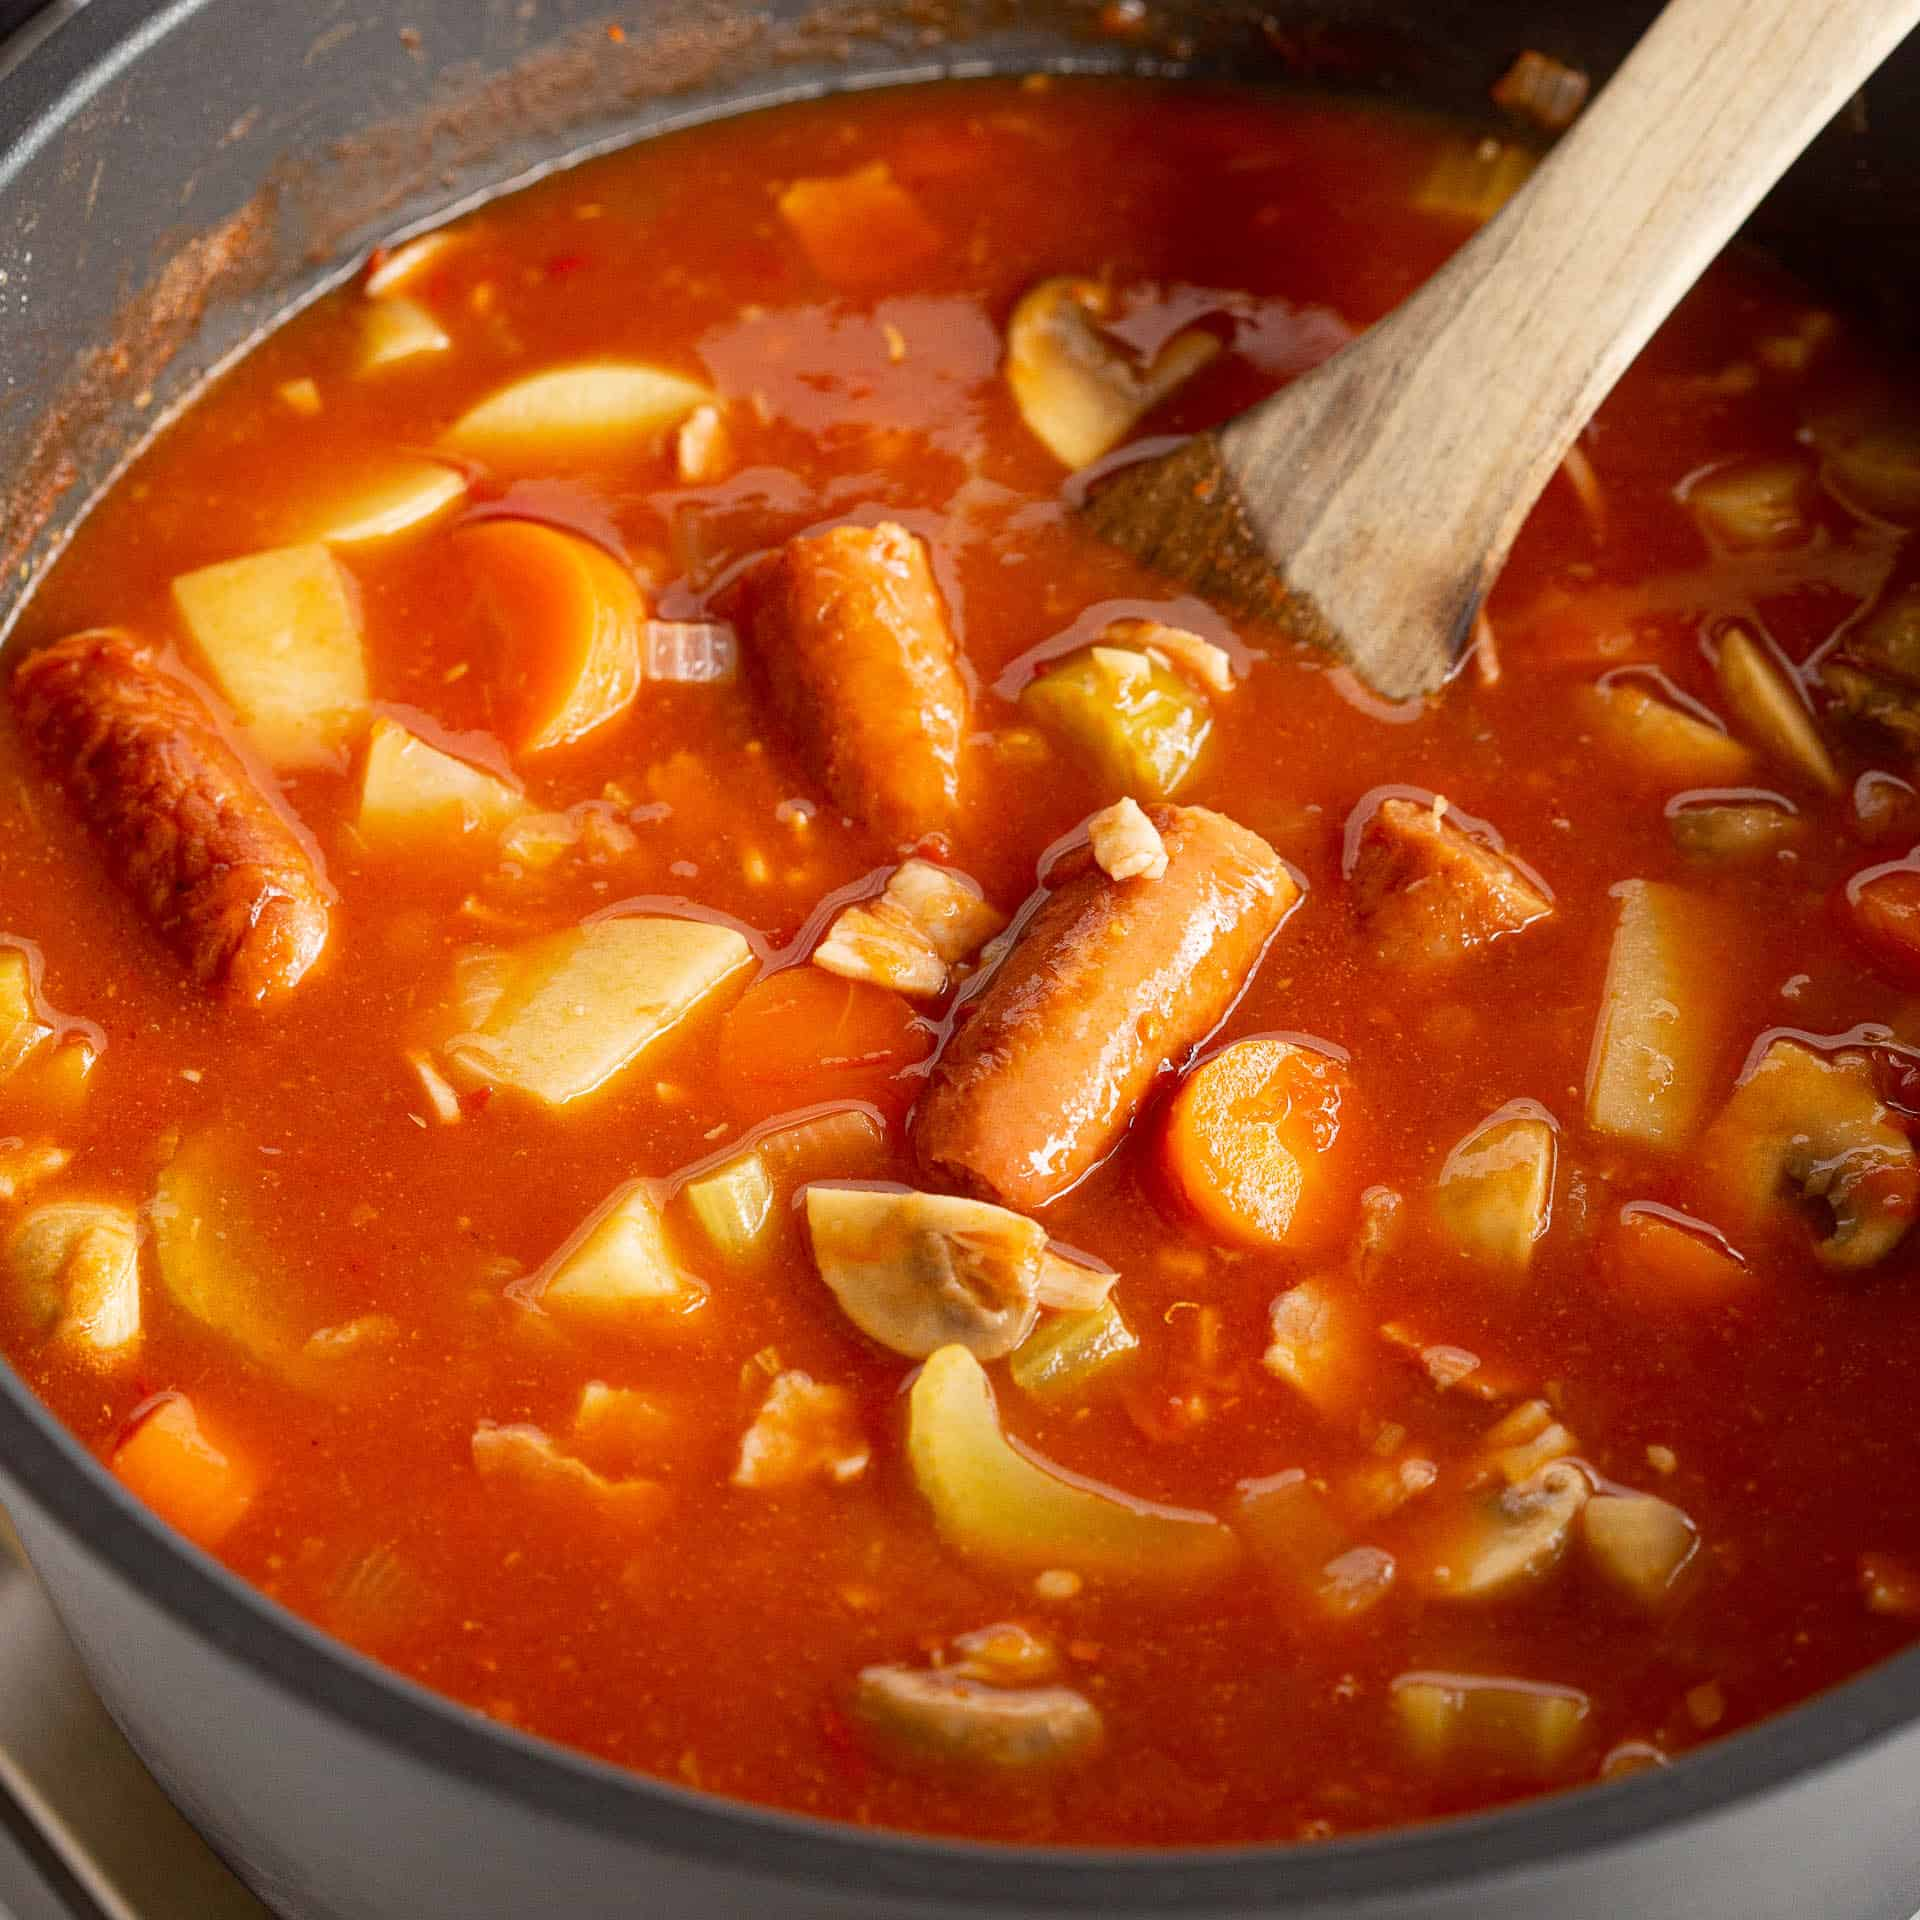 Sausage and bean casserole in Remoska with wooden ladle.